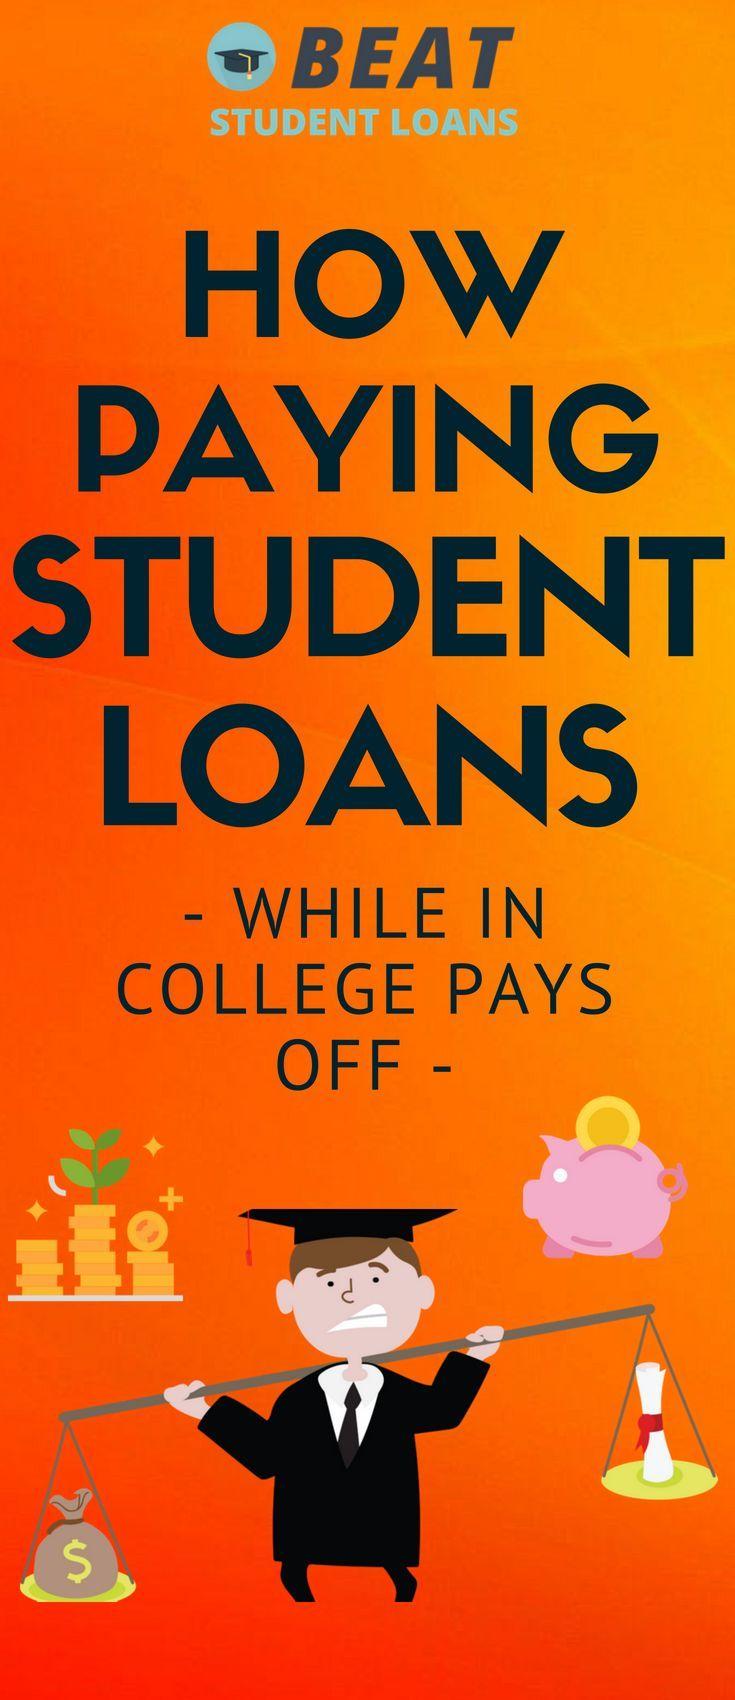 How paying student loans while in college pays off